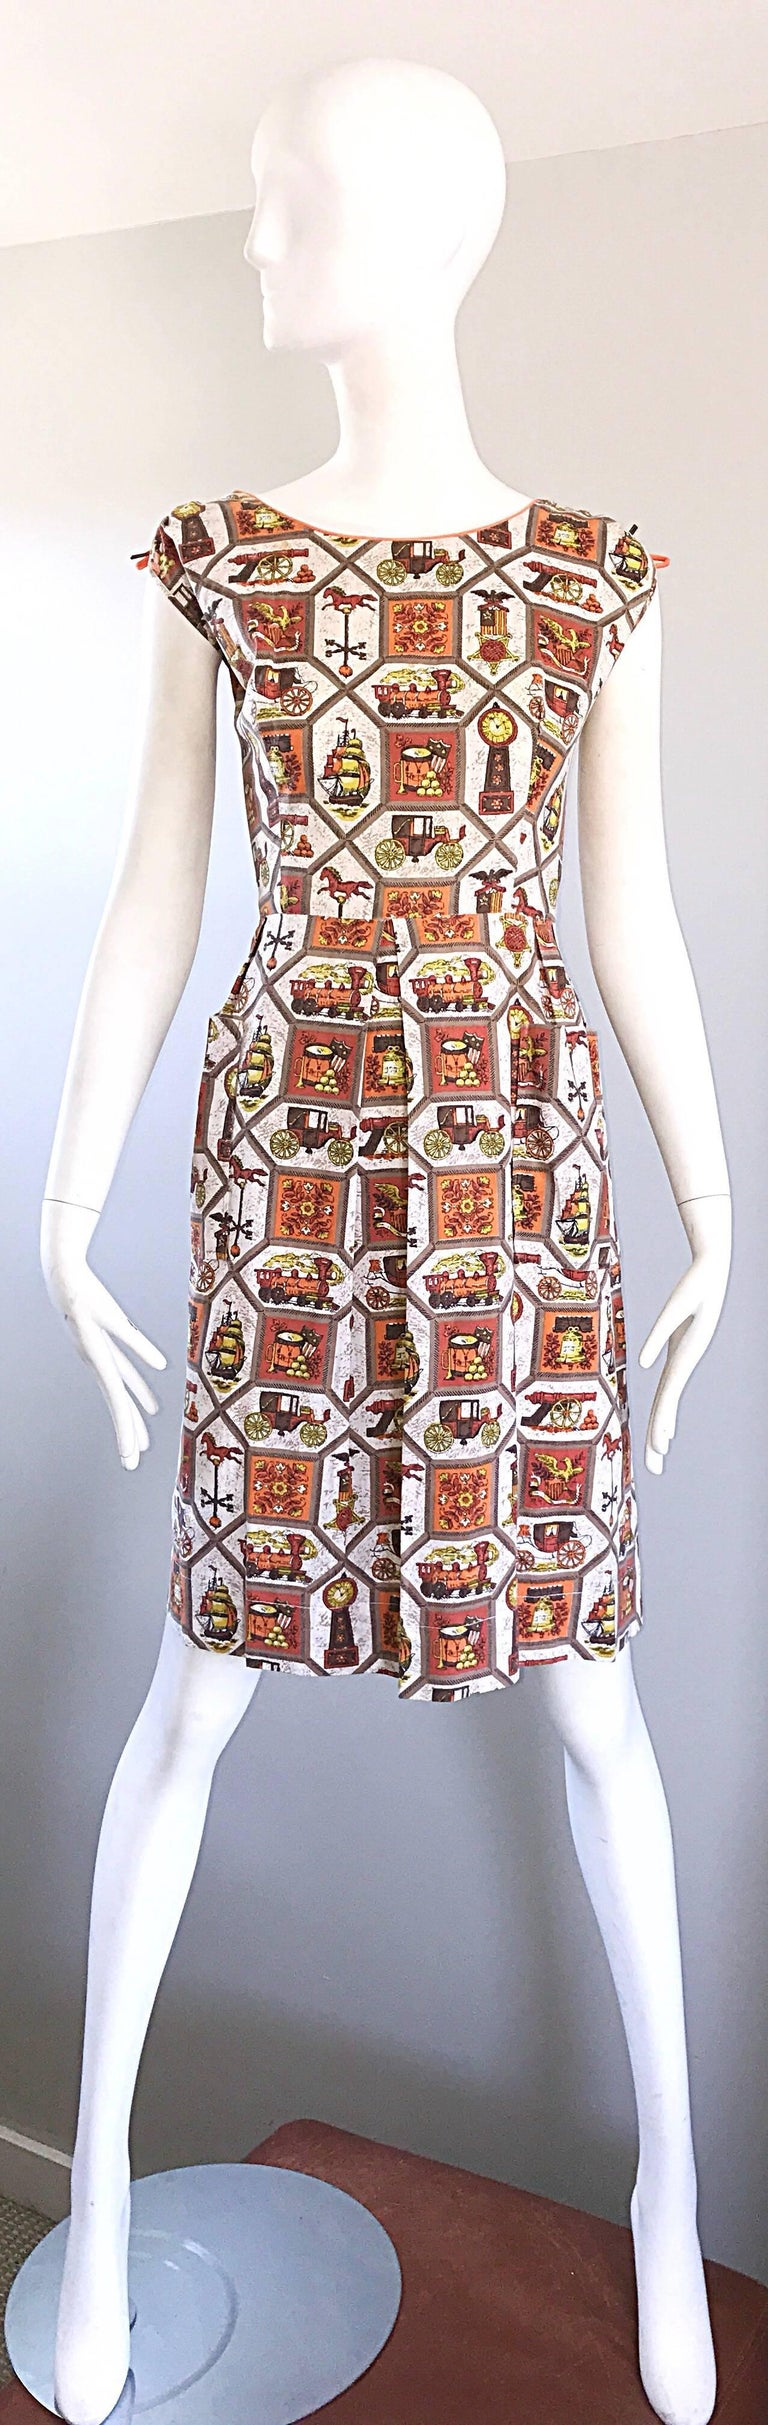 Chic and rare larger plus size 1950s novelty cotton dress! Features whimsical prints of trains, toy horses, drums, clocks, flowers, ships, cannons, crests, etc. Vibrant colors of orange, brown, yellow, gold, brown and burnt orange throughout. Bright